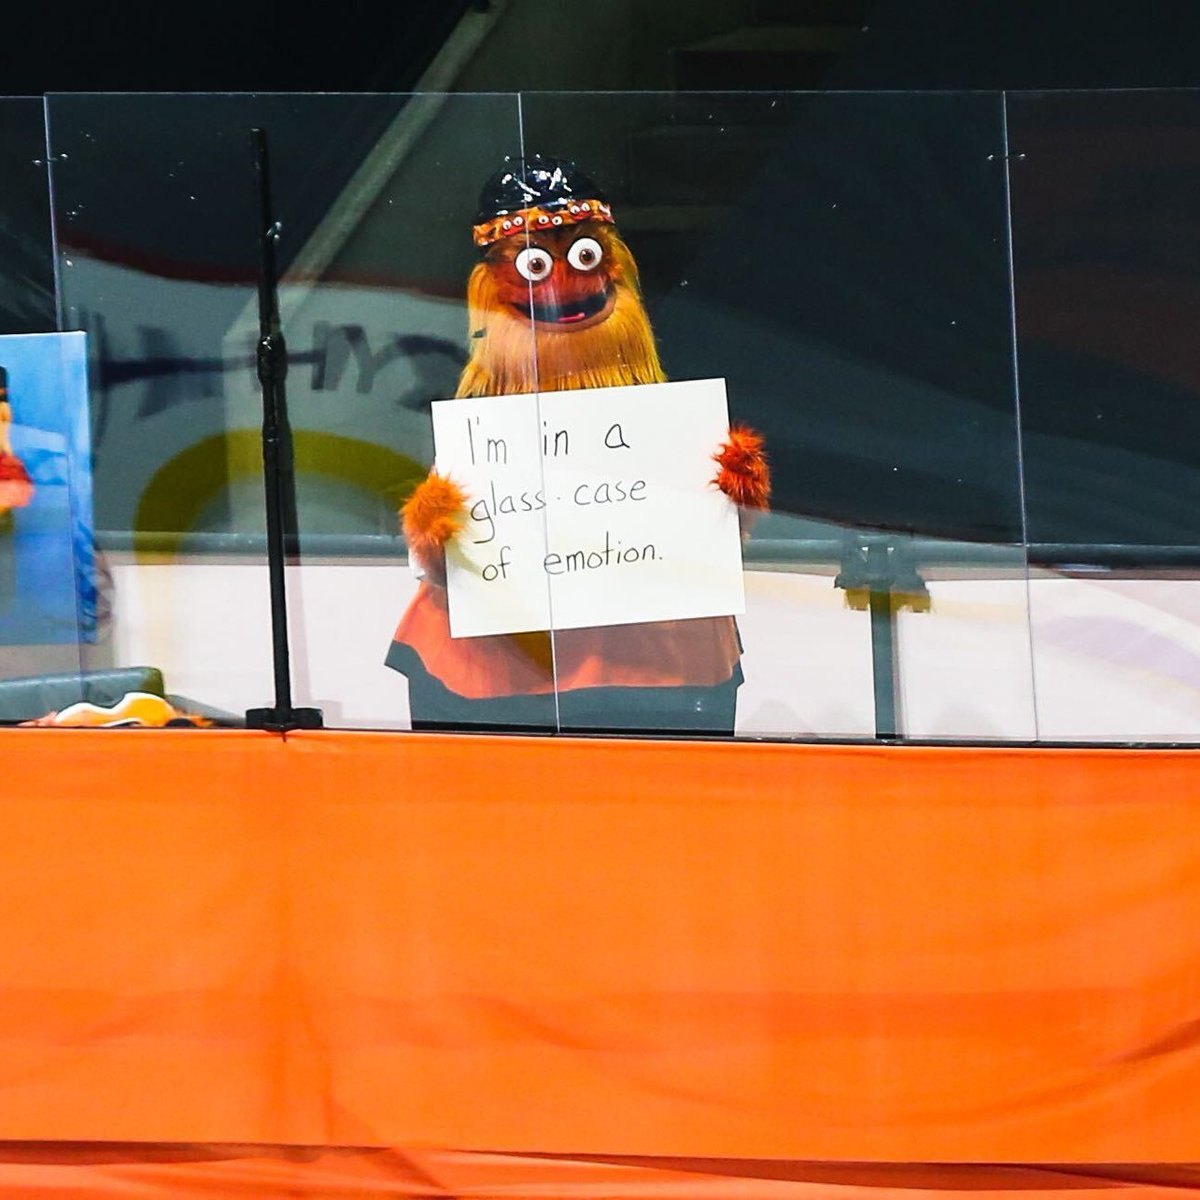 Replying to @NHLFlyers: please do not tap on the glass.   #AnytimeAnywhere   @GrittyNHL